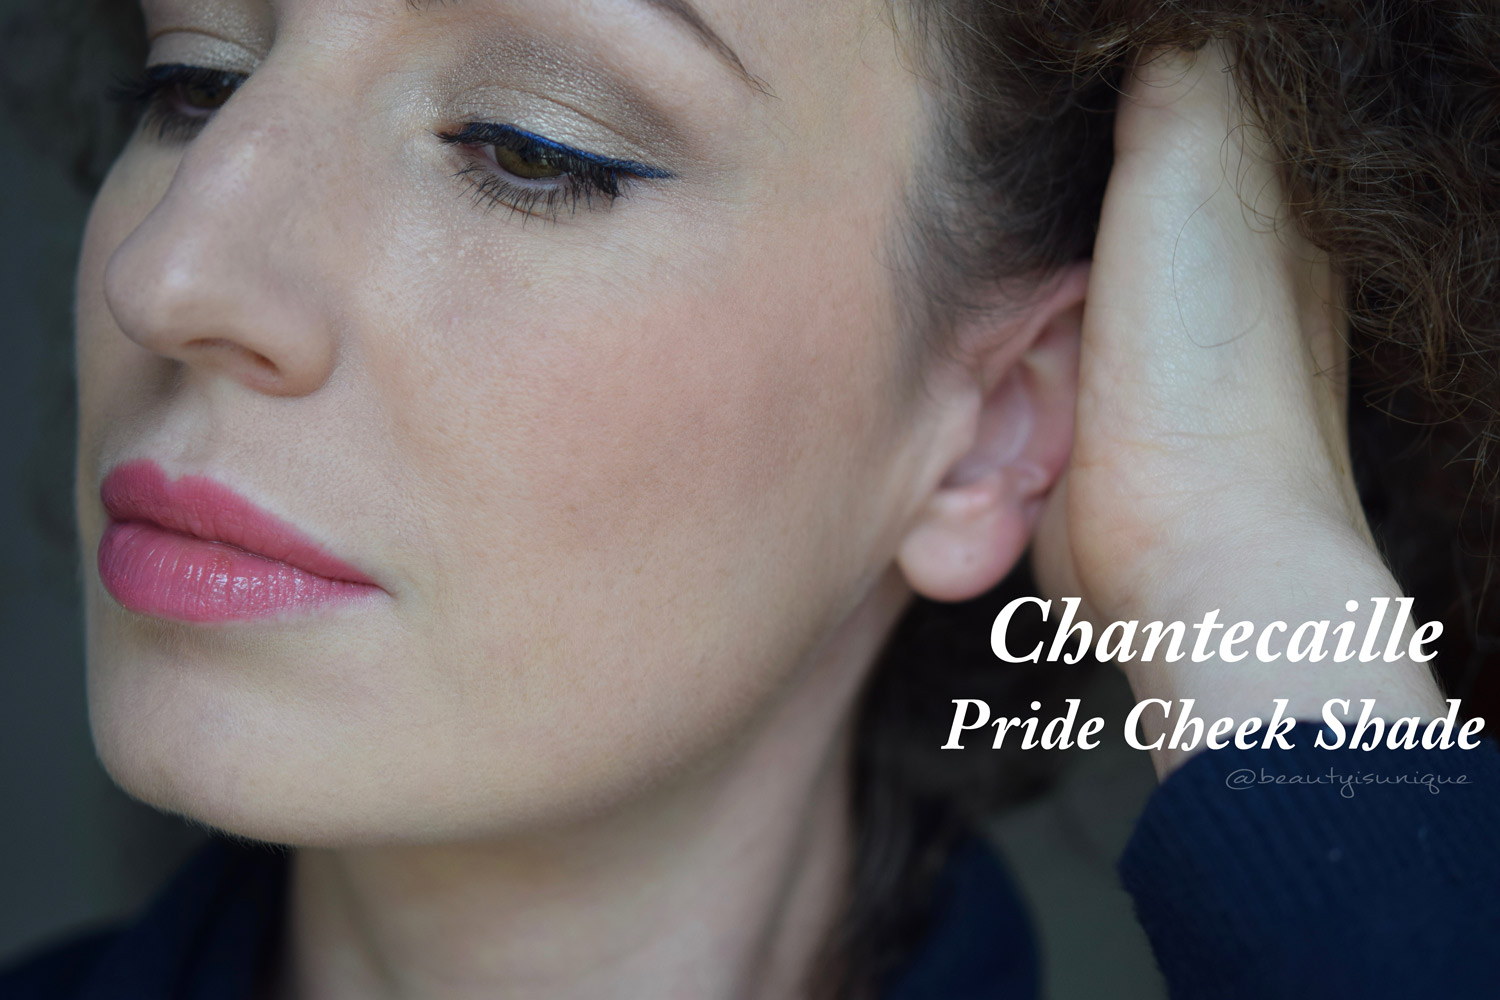 chantecaille-pride-cheek-shade-makeup